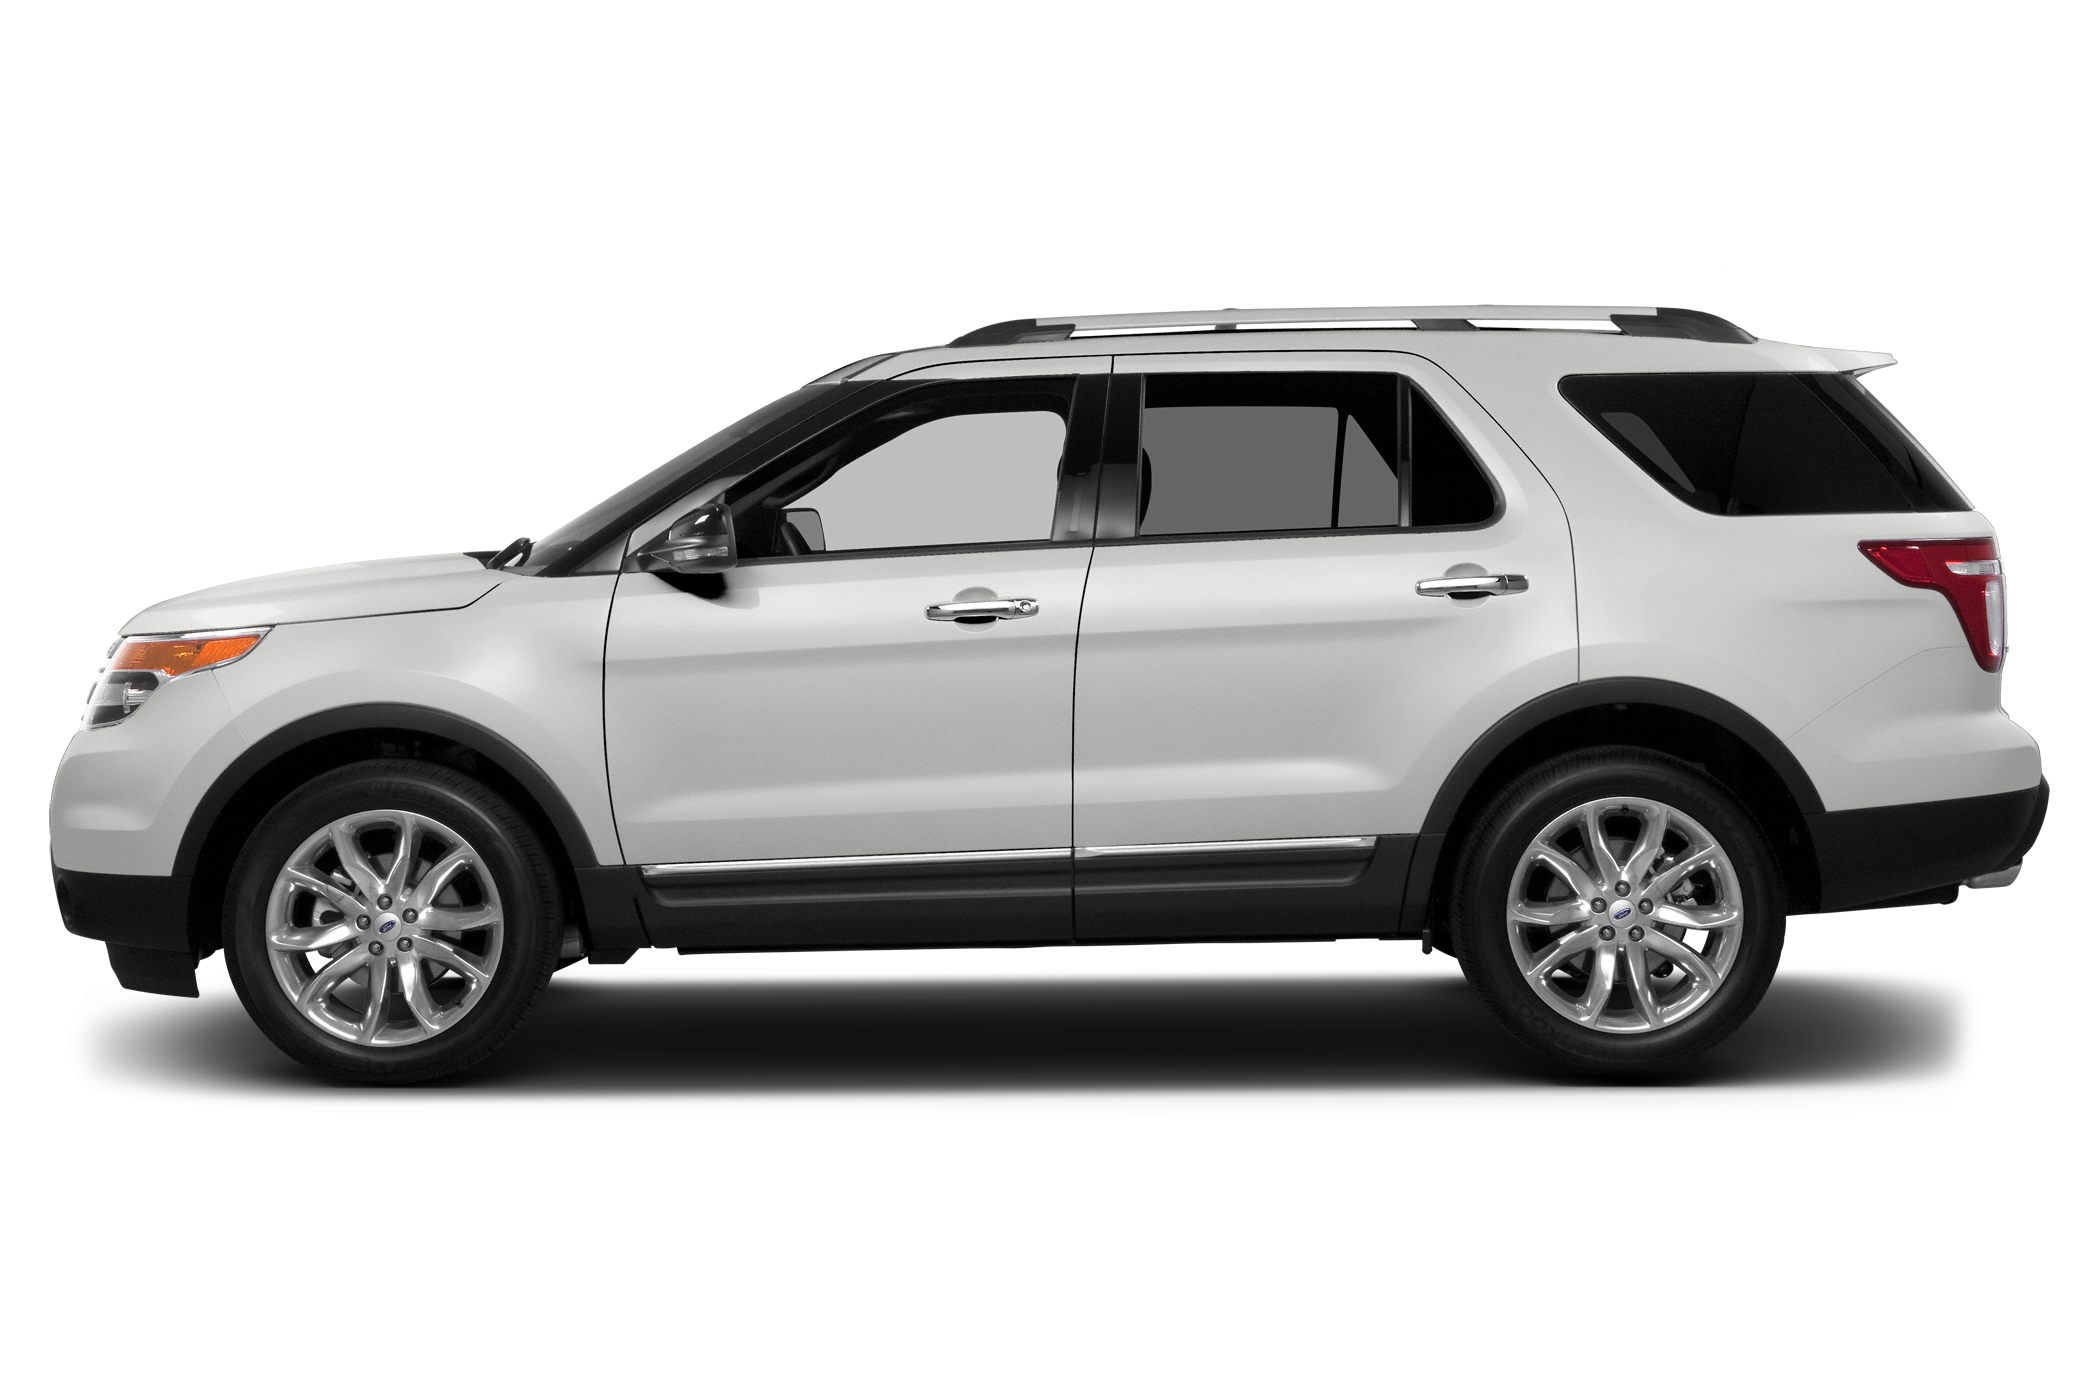 Used 2015 ford explorer for sale in buckner near louisville ky vin 1fm5k8b88fga63201